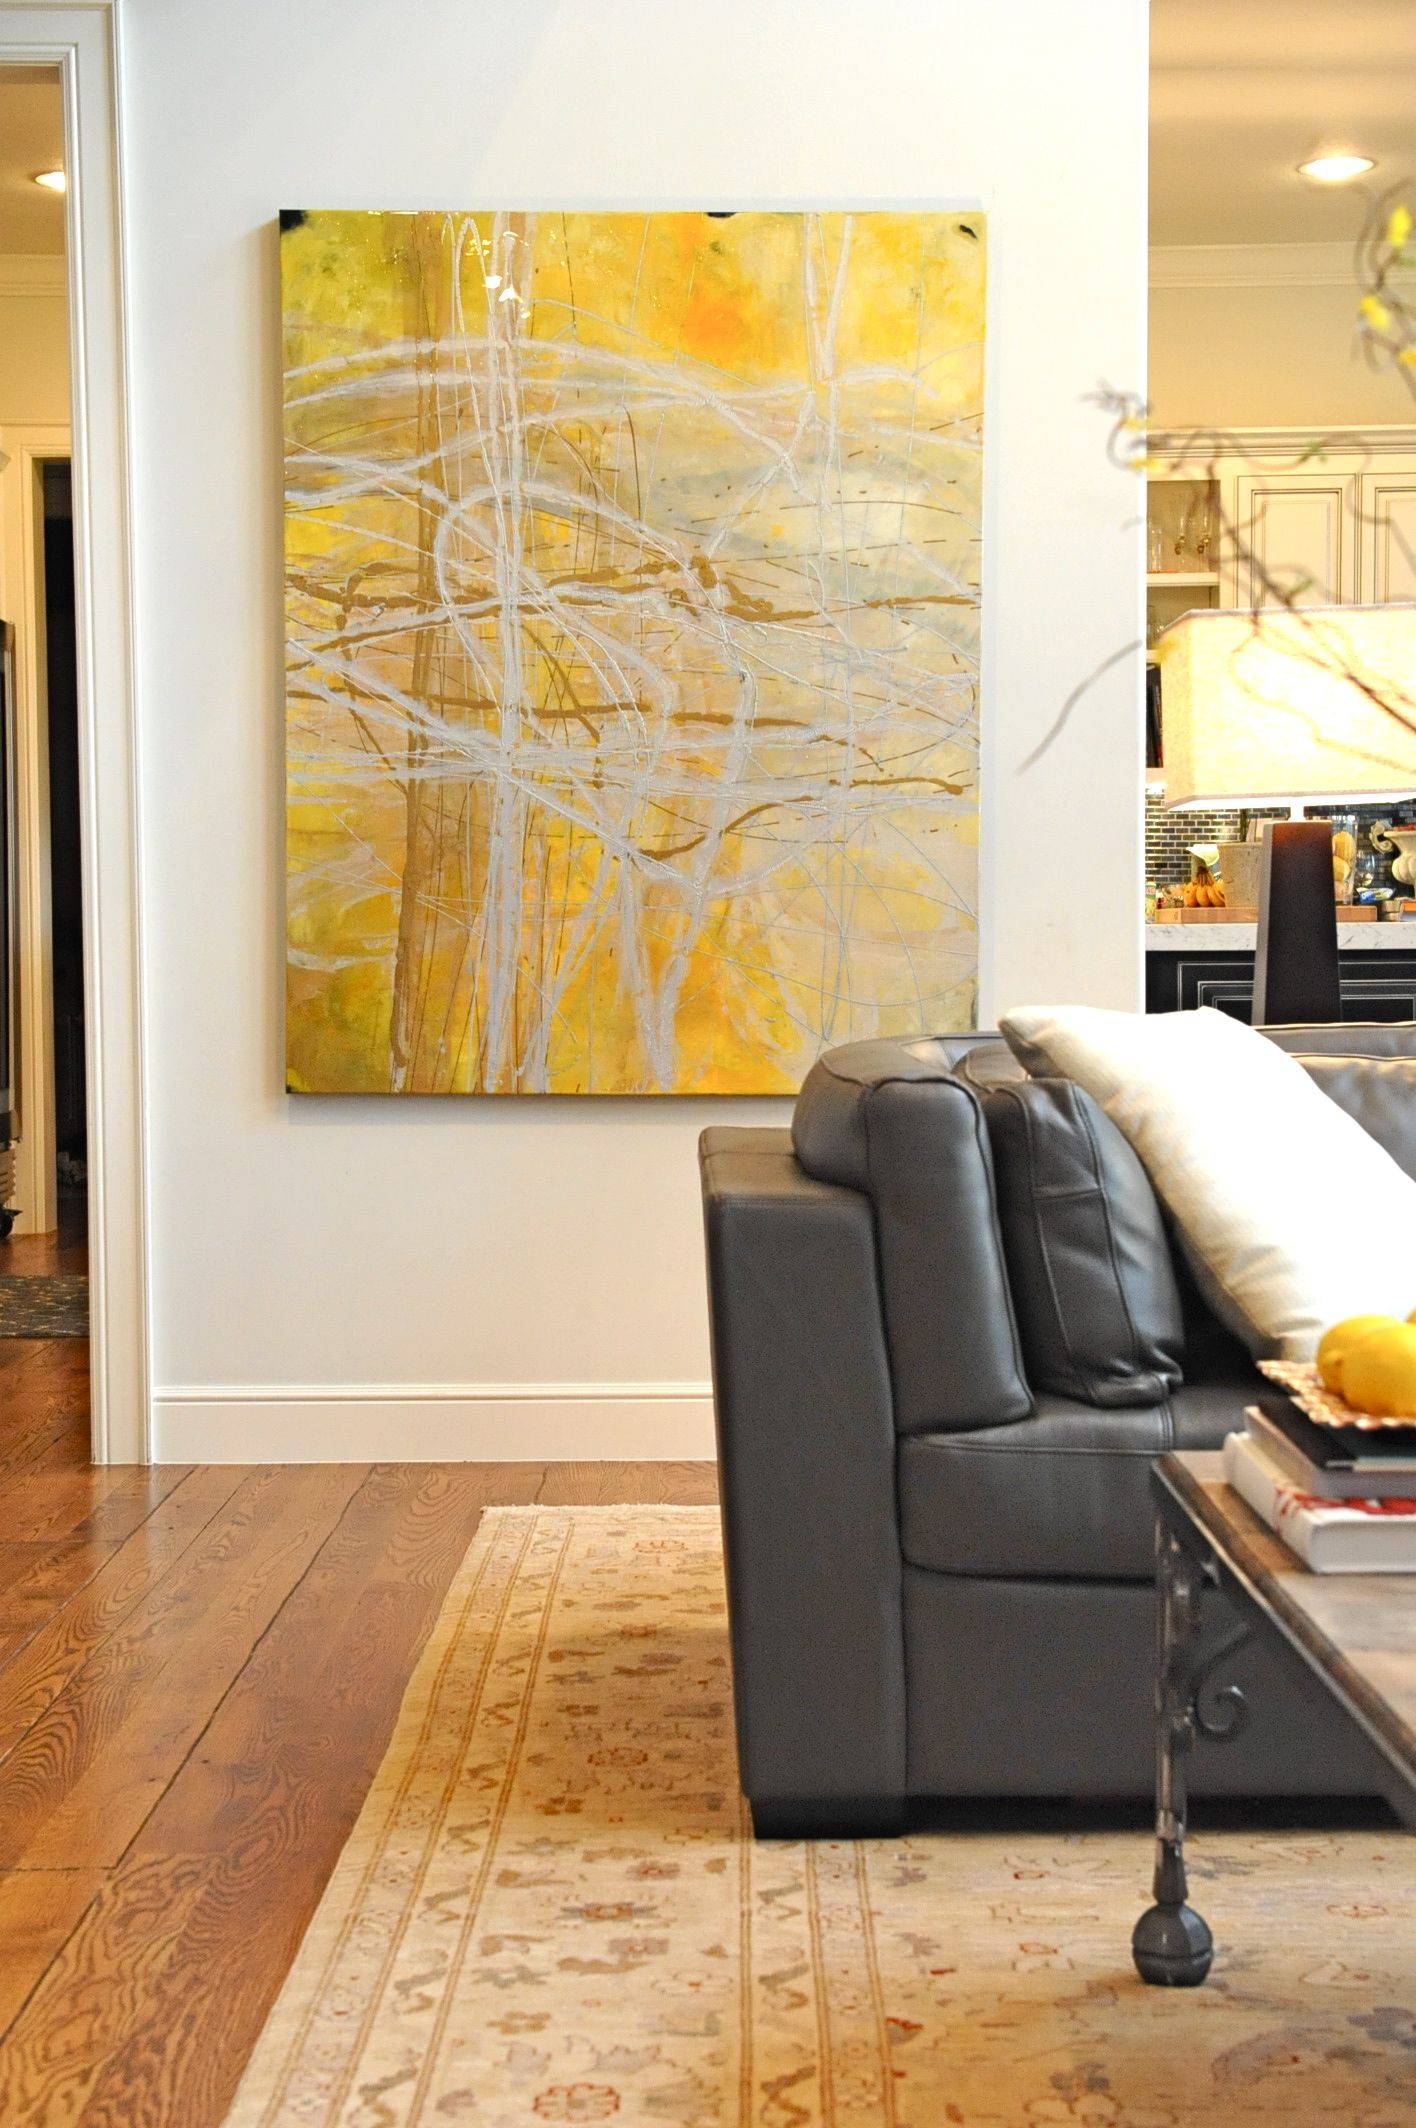 The impact of art in decorating | art | Pinterest | Decorating ...